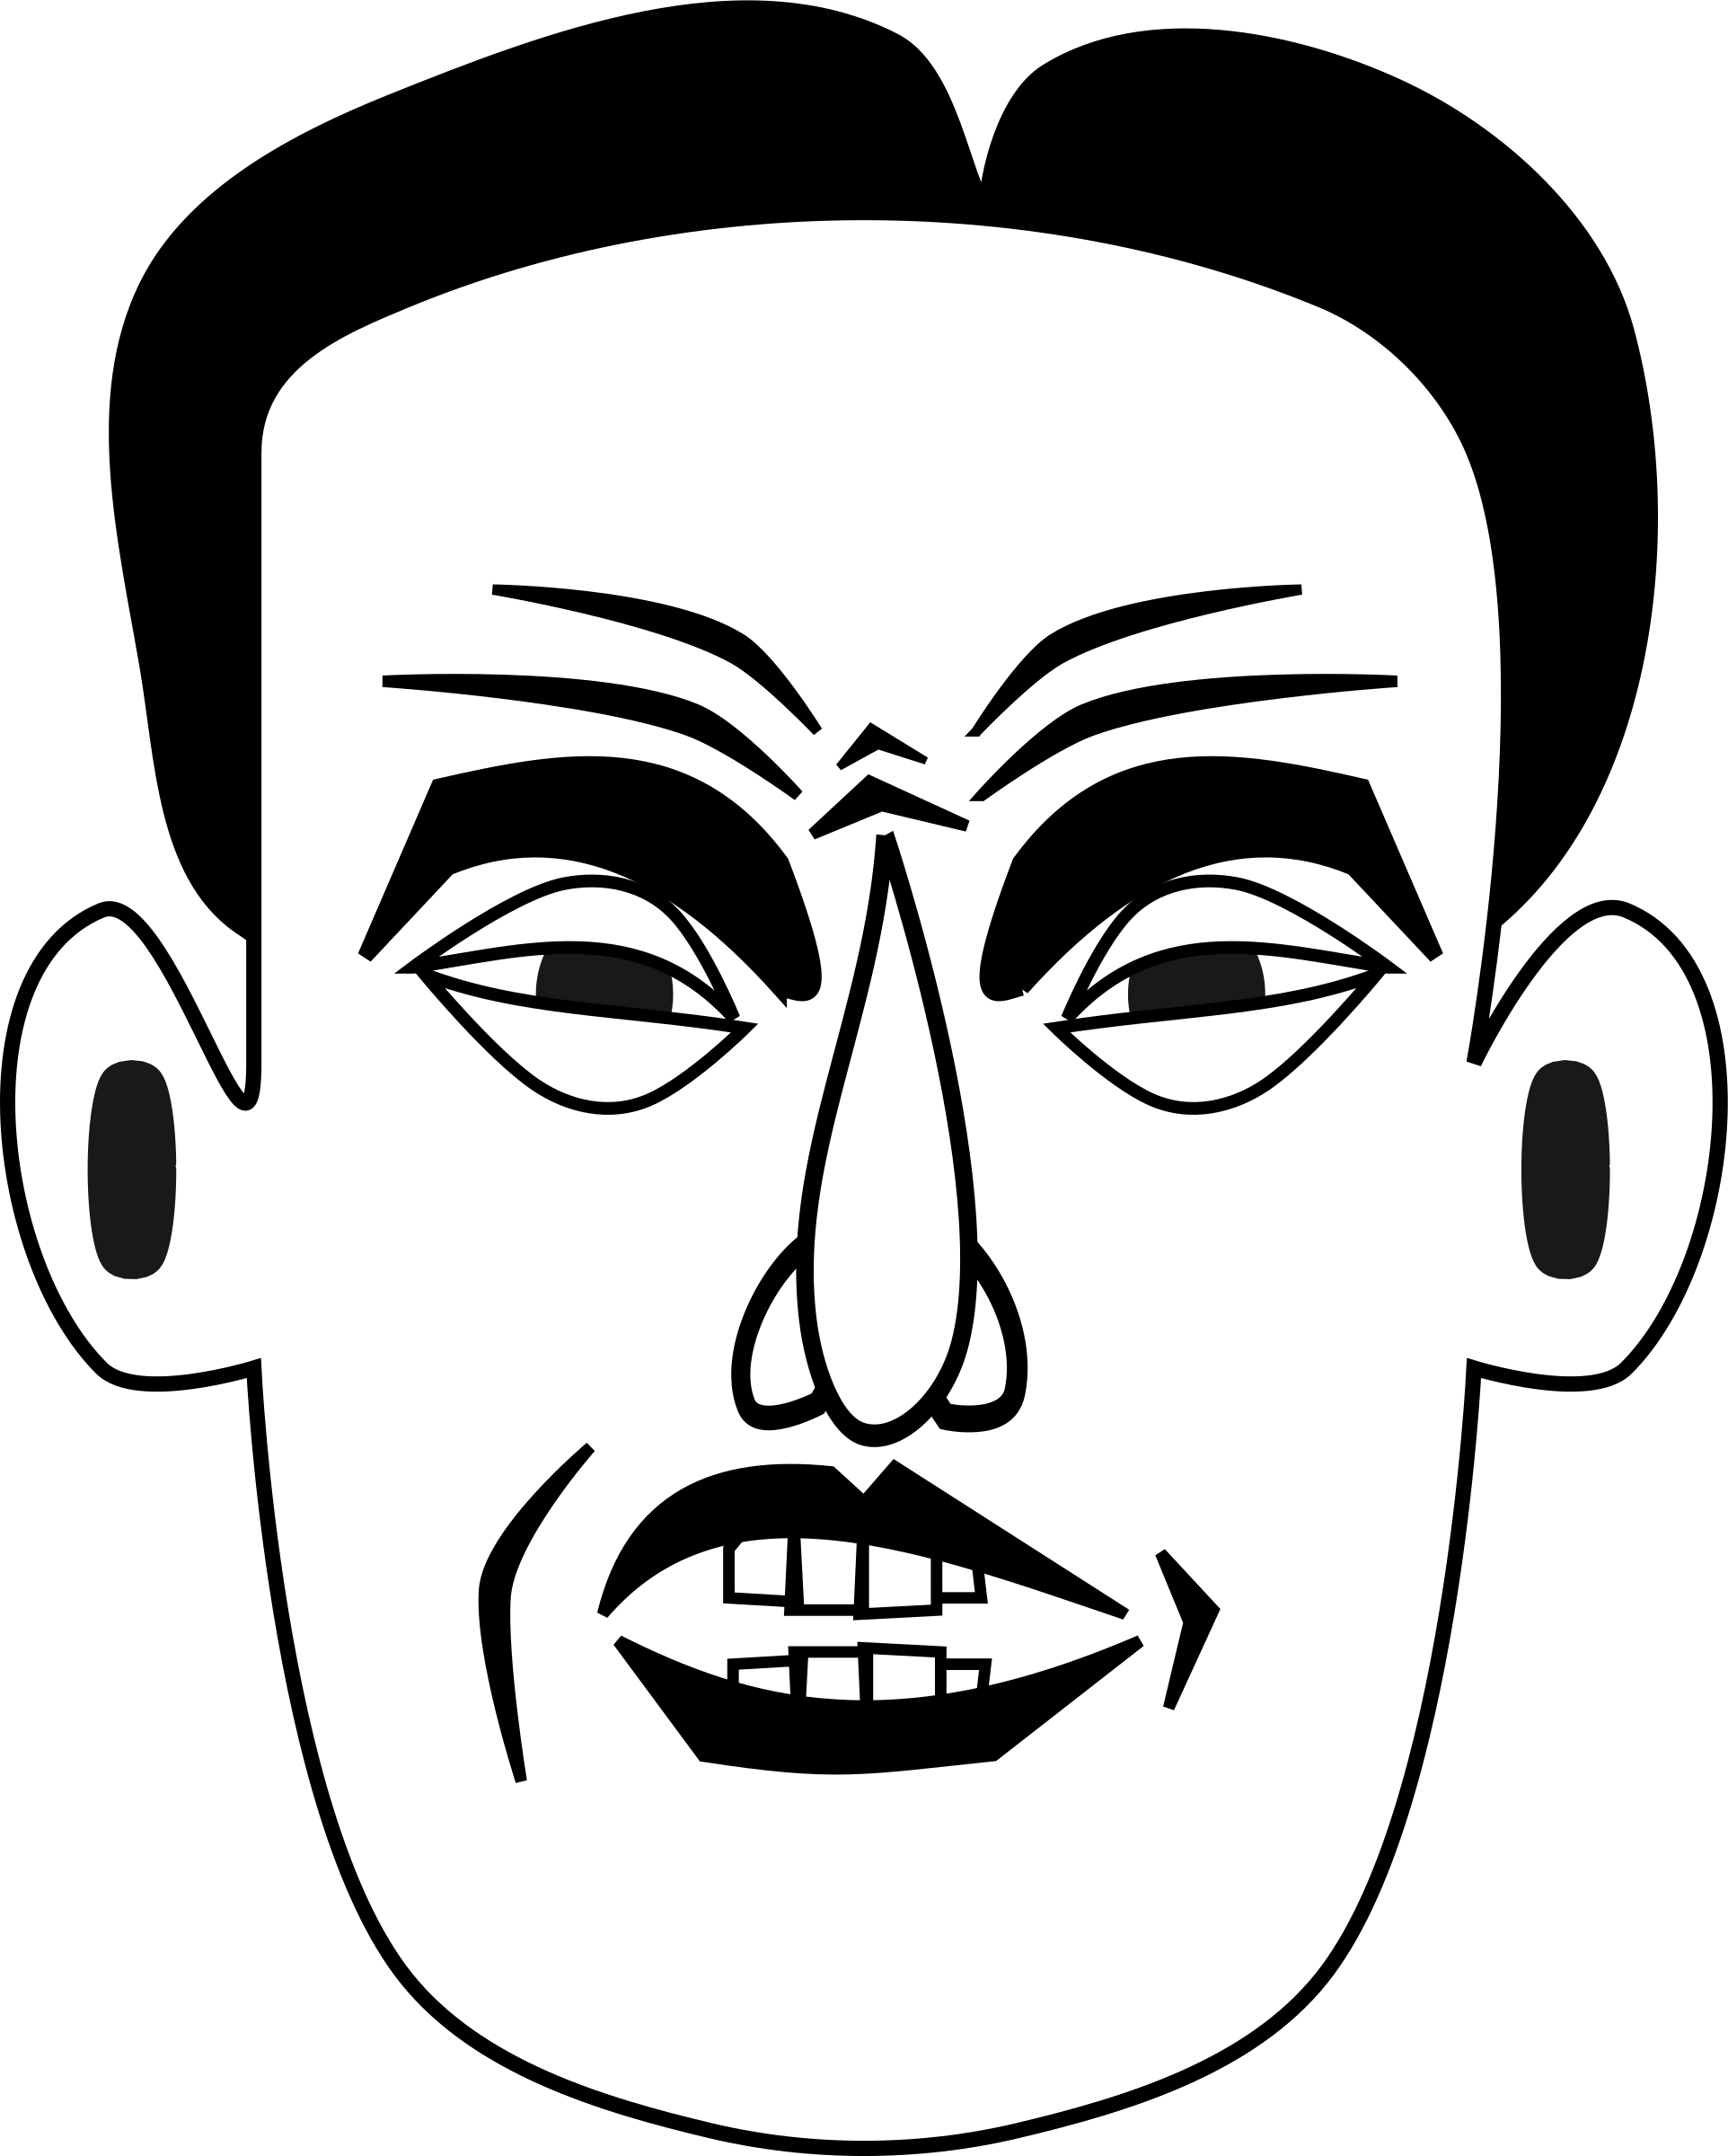 Rage drawing emotional. Anger clipart black